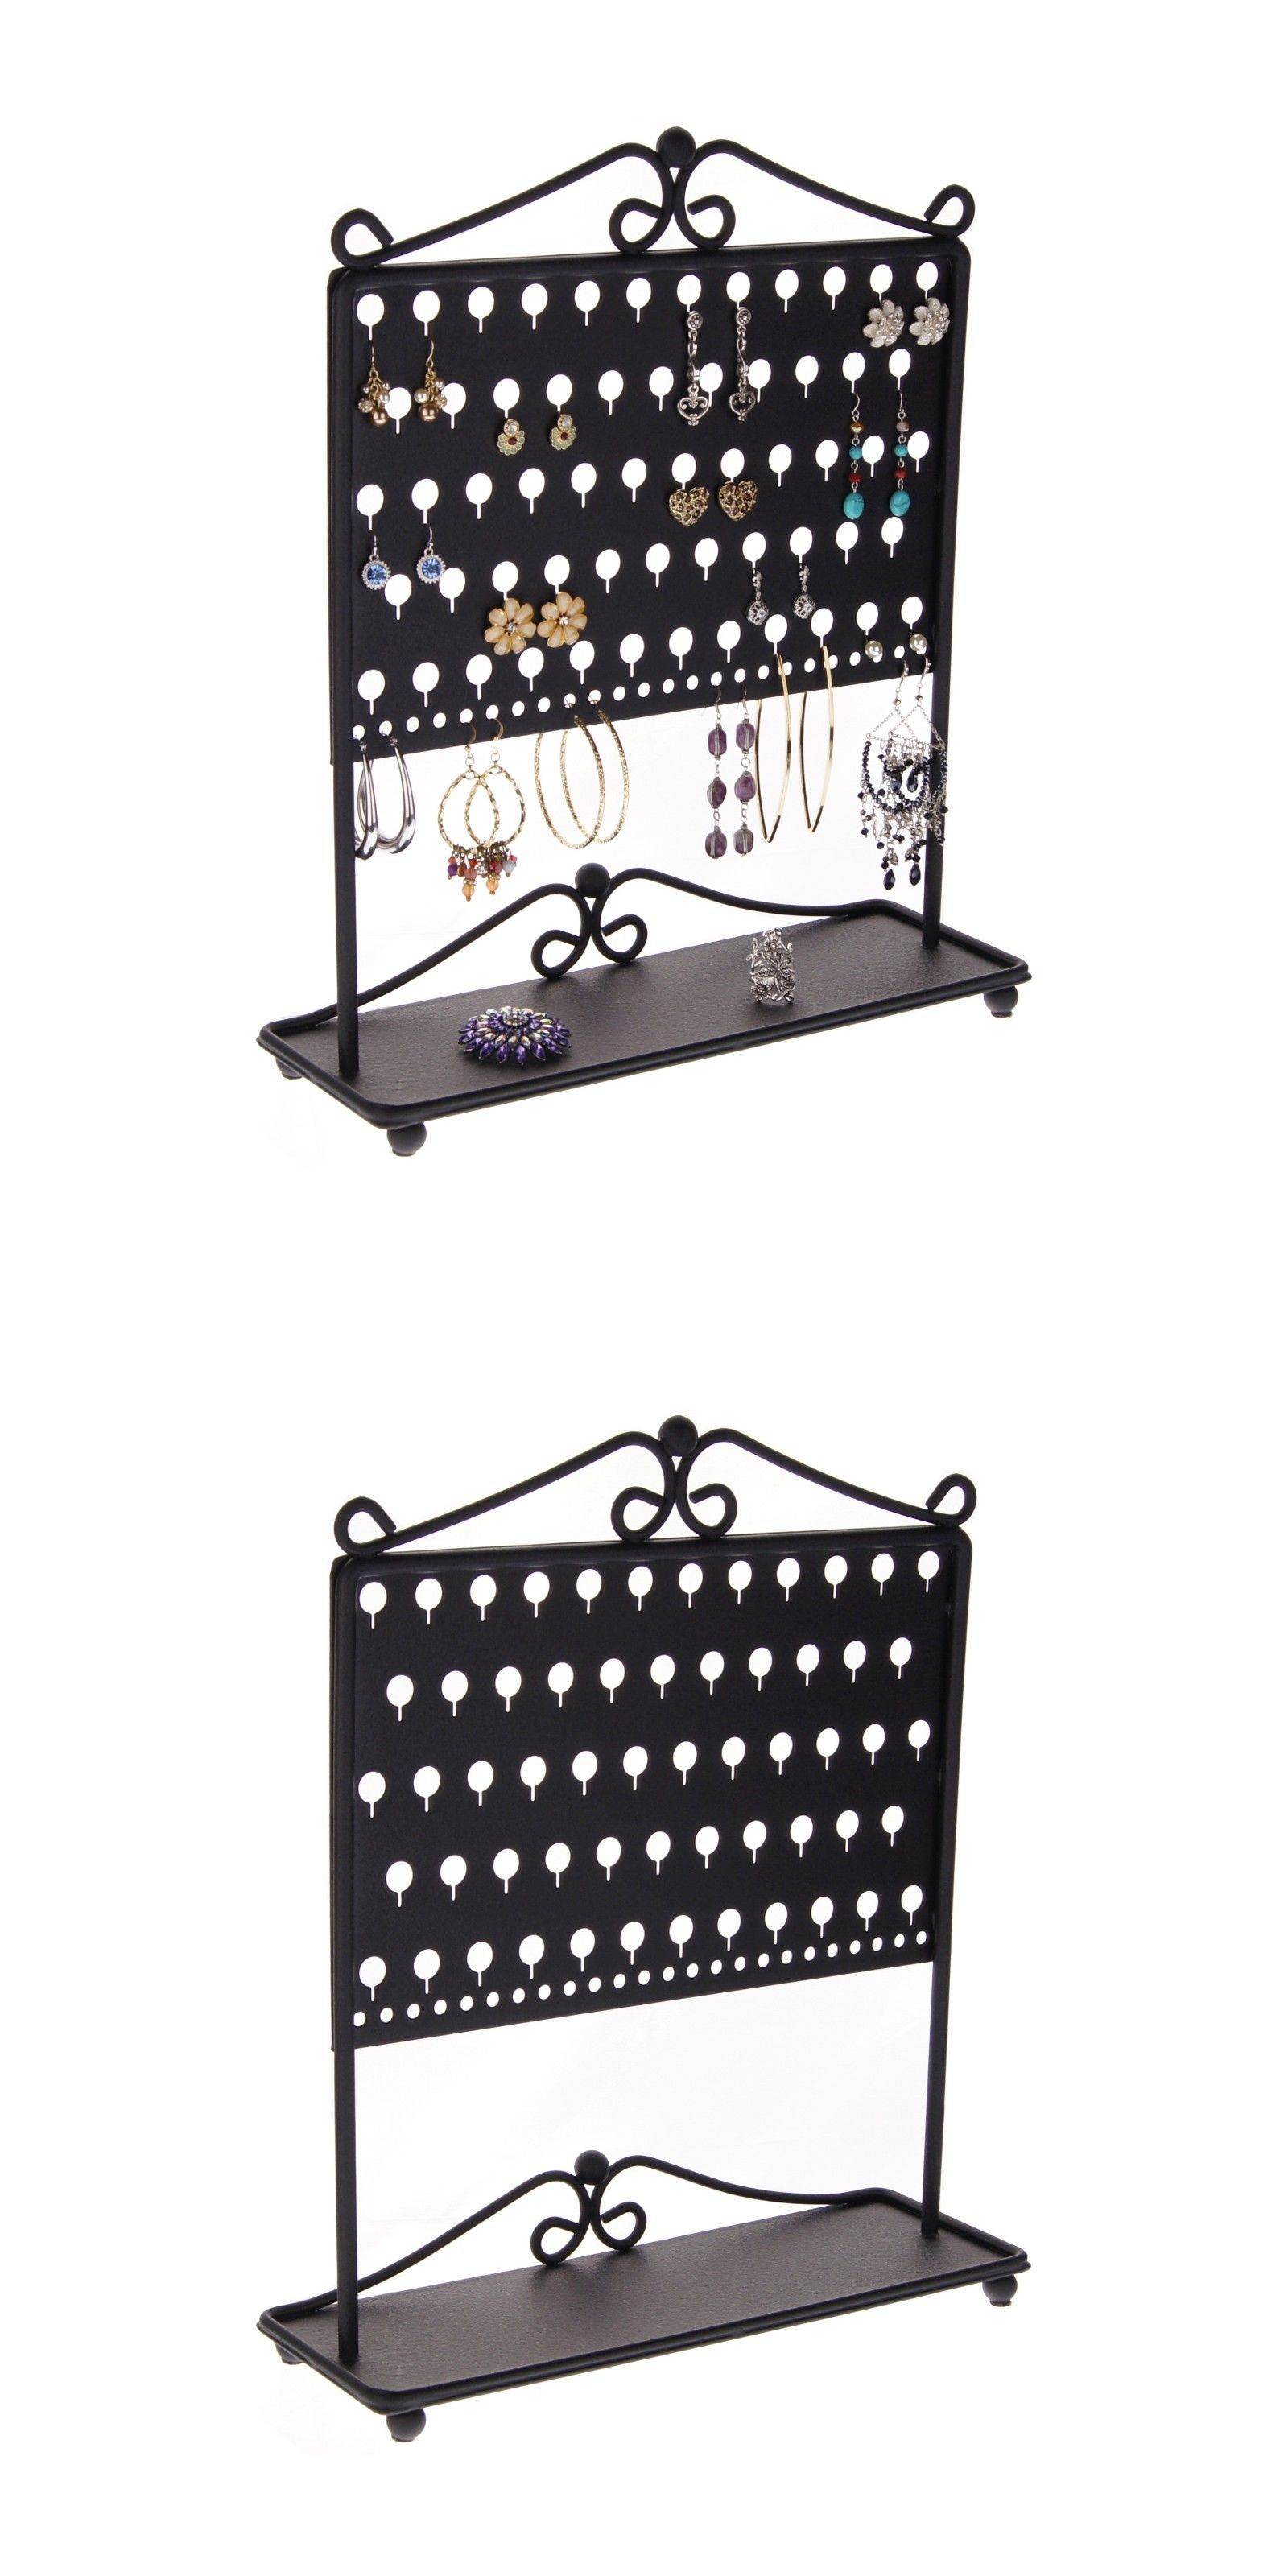 Earring 168161 Earring Holder Organizer Stand Jewelry Organizer